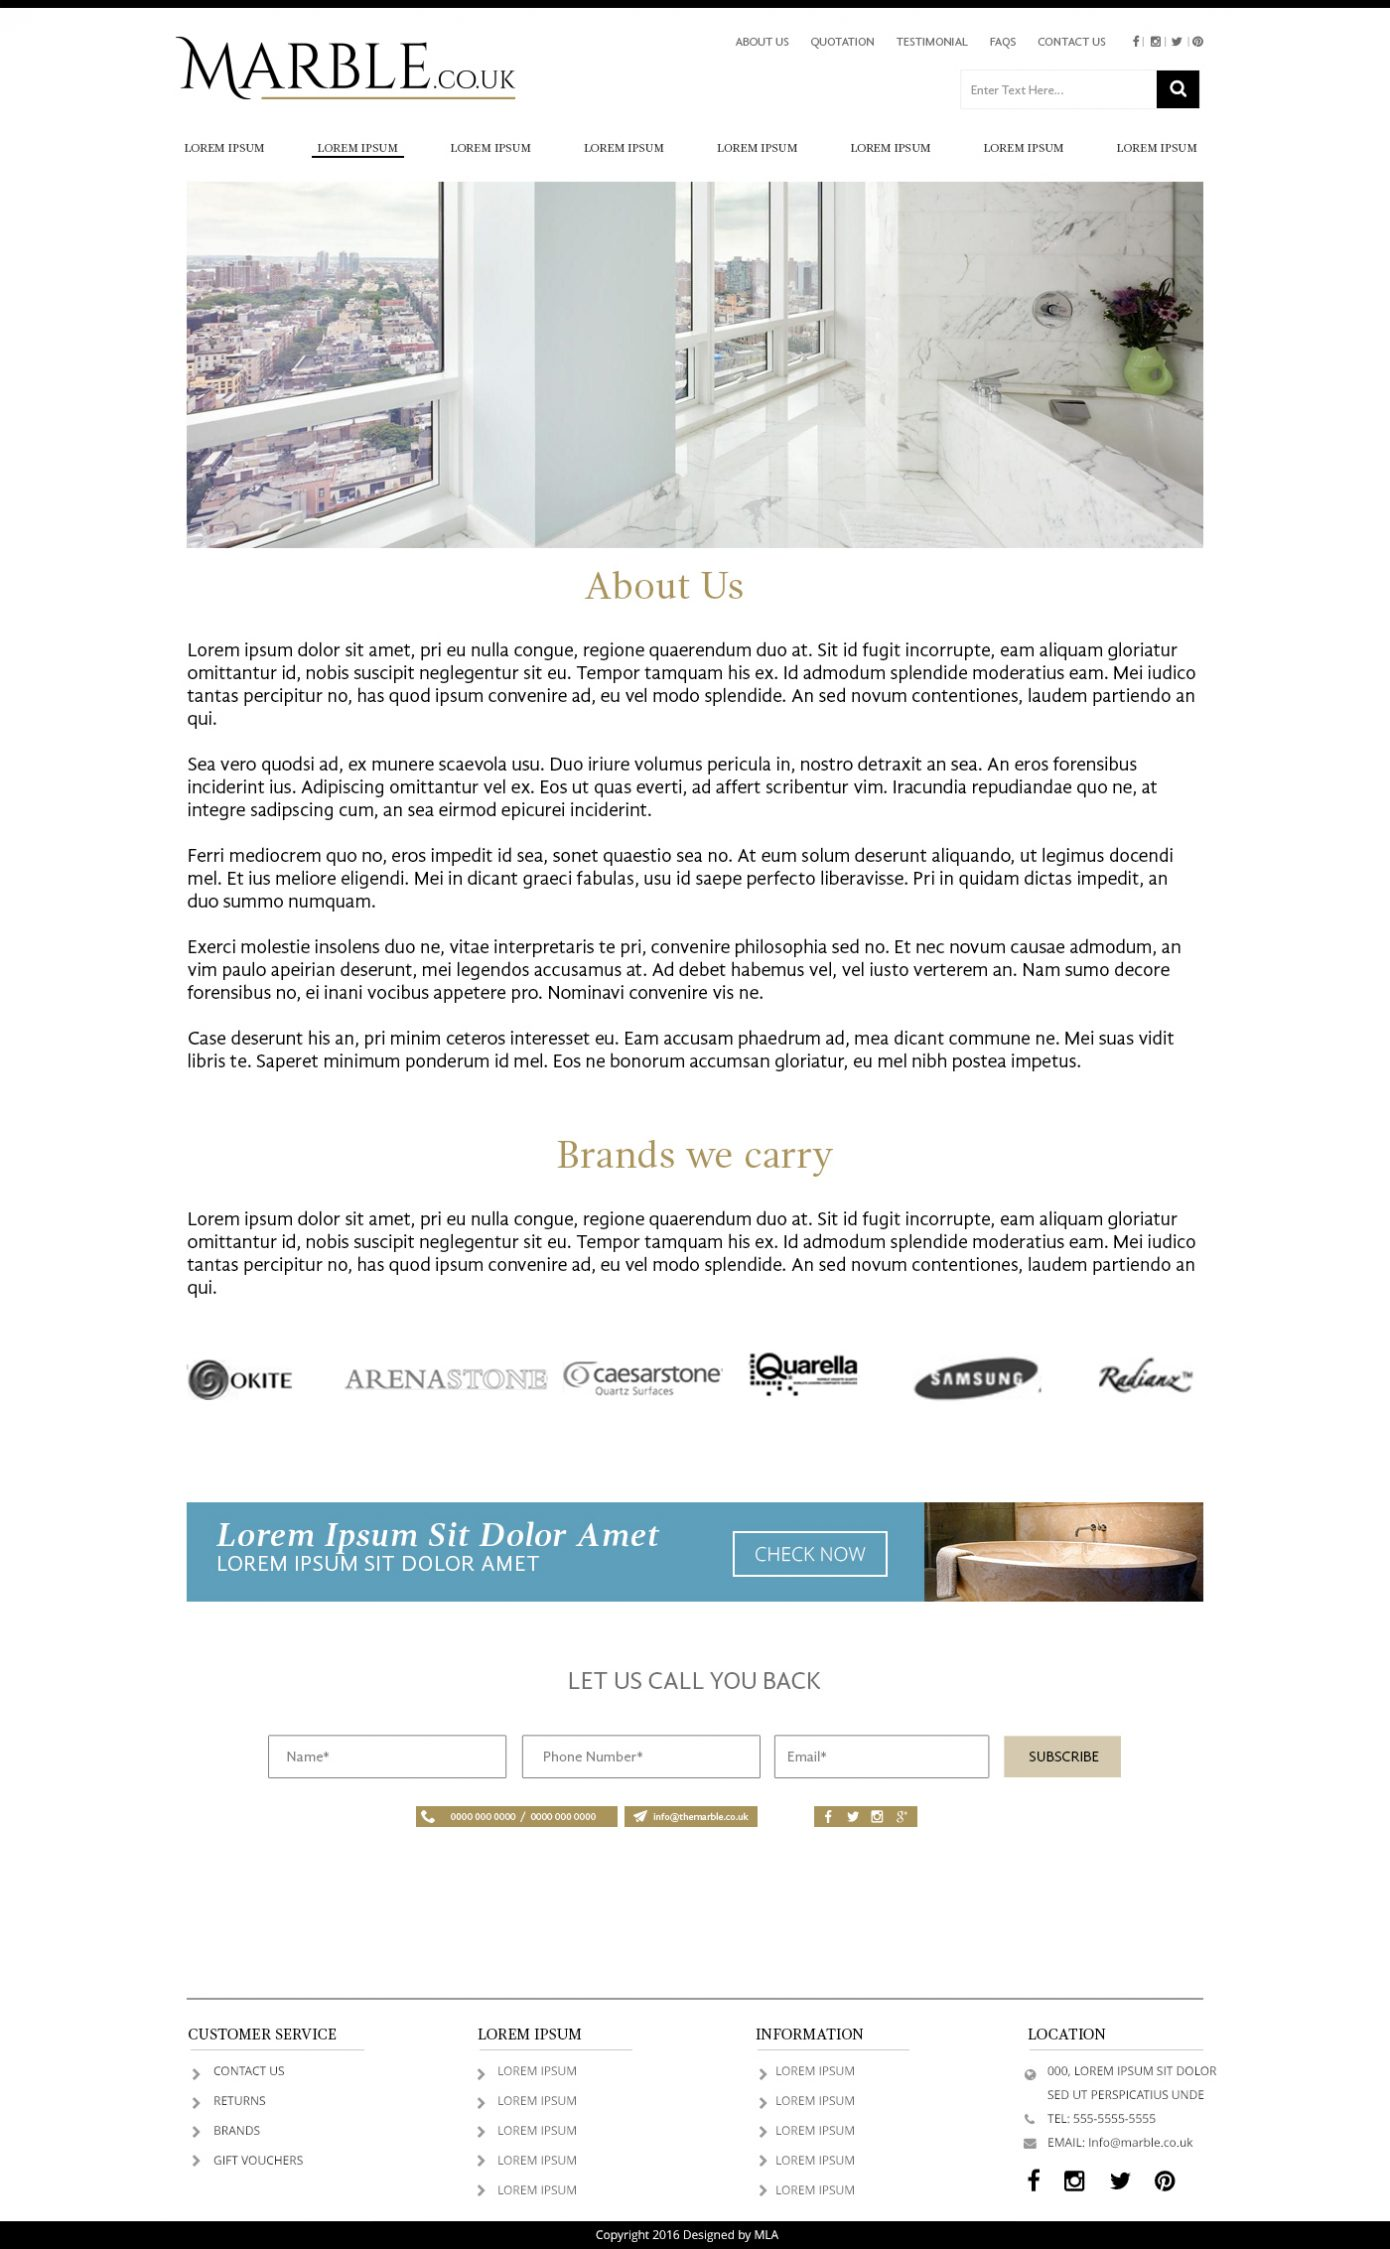 MarbleCoUk about page design - Website design London - web design agency london